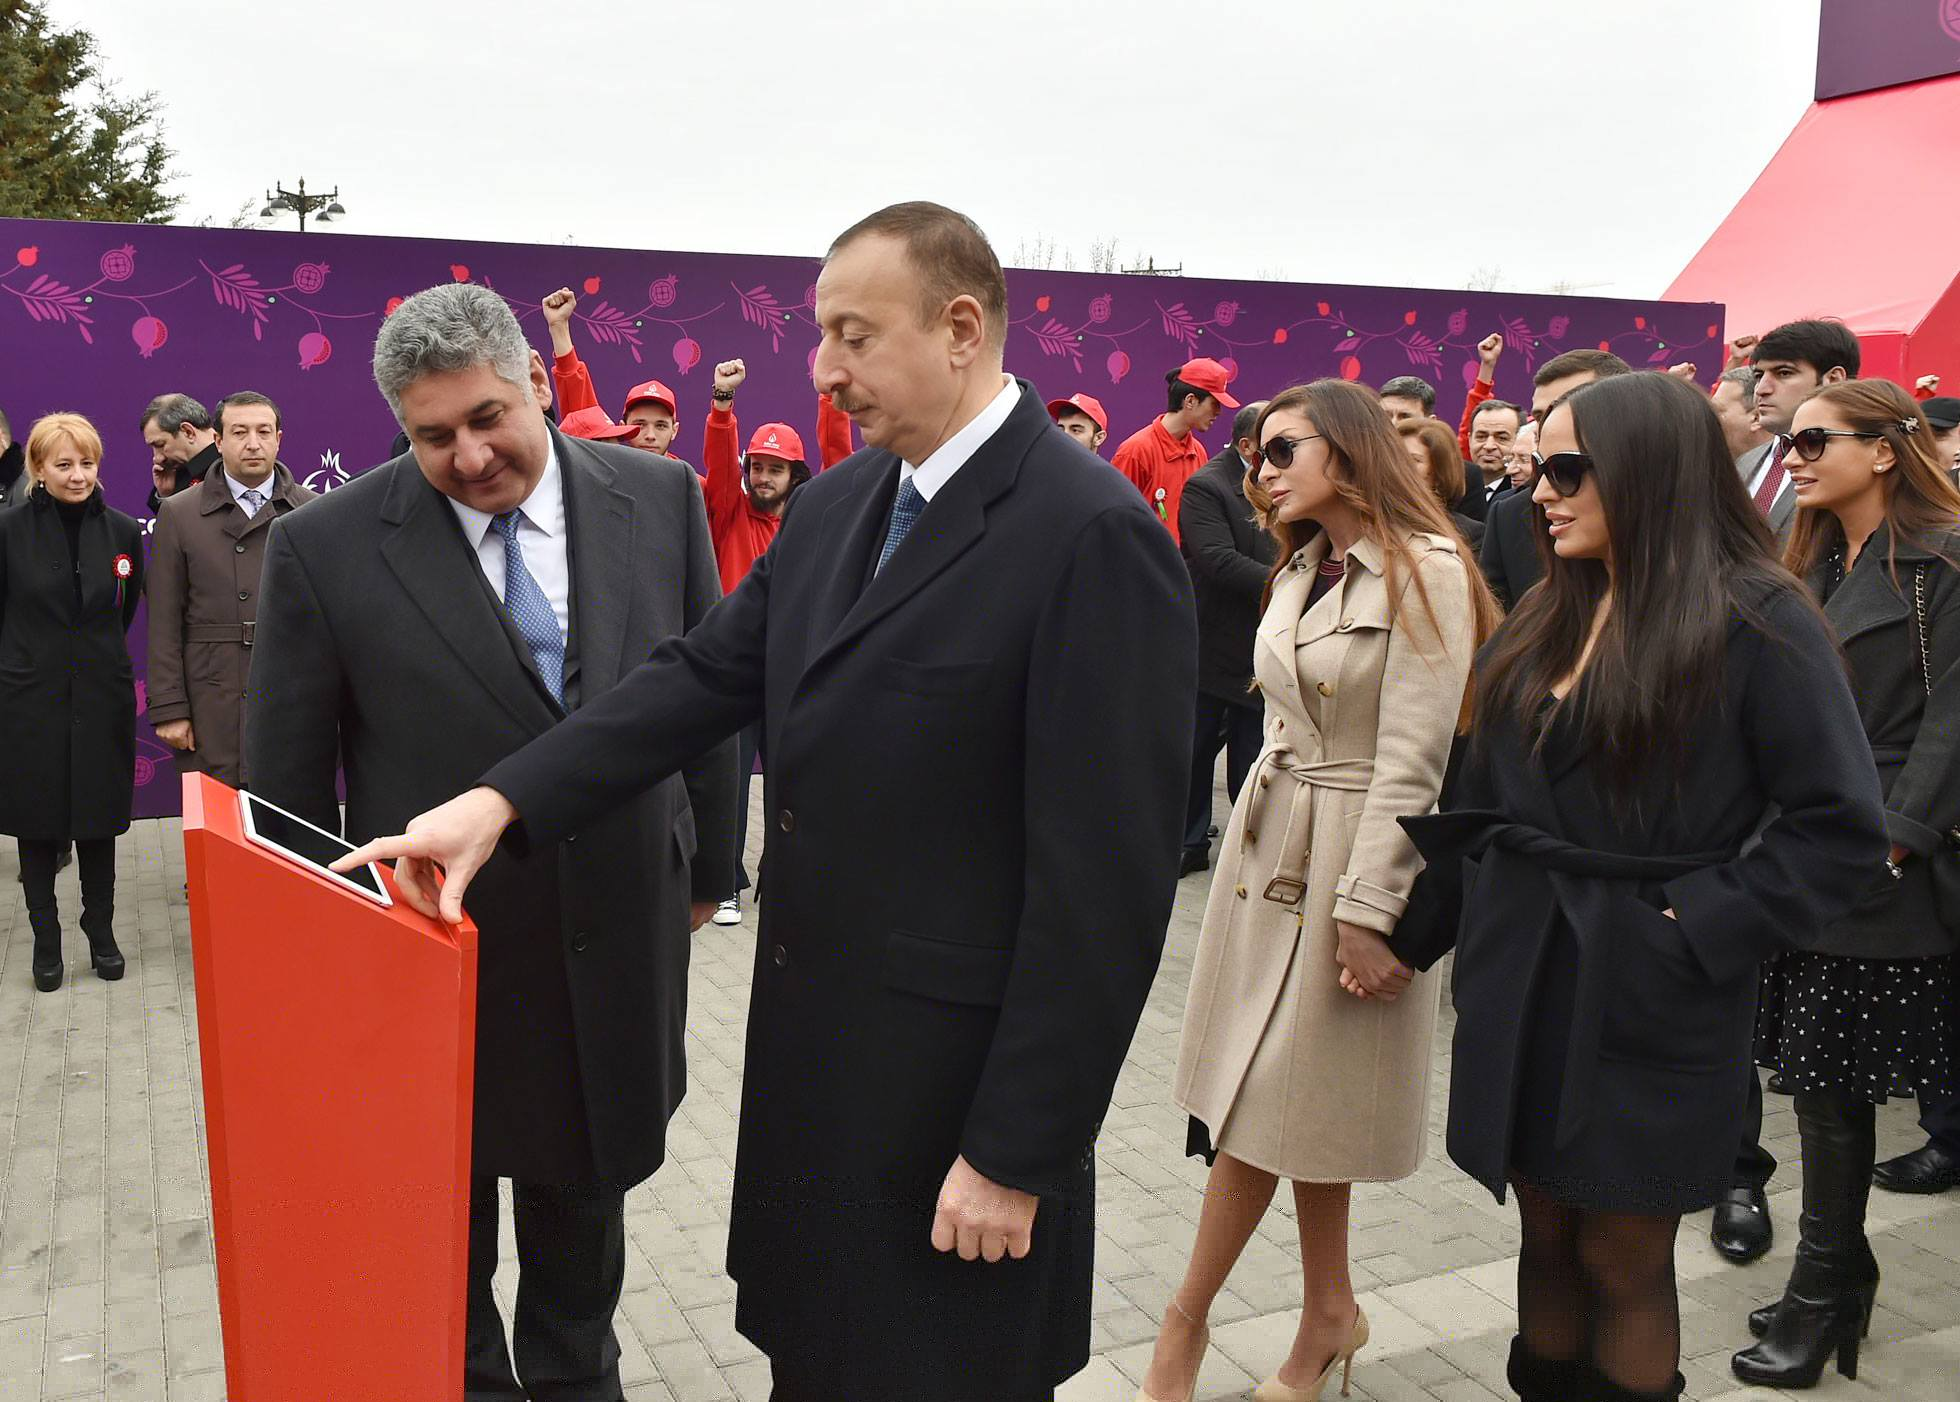 Azerbaijan President Ilham Aliyev took part in a ceremonial purchase of the first ticket for Baku 2015 during the Novruz celebrations ©Baku 2015